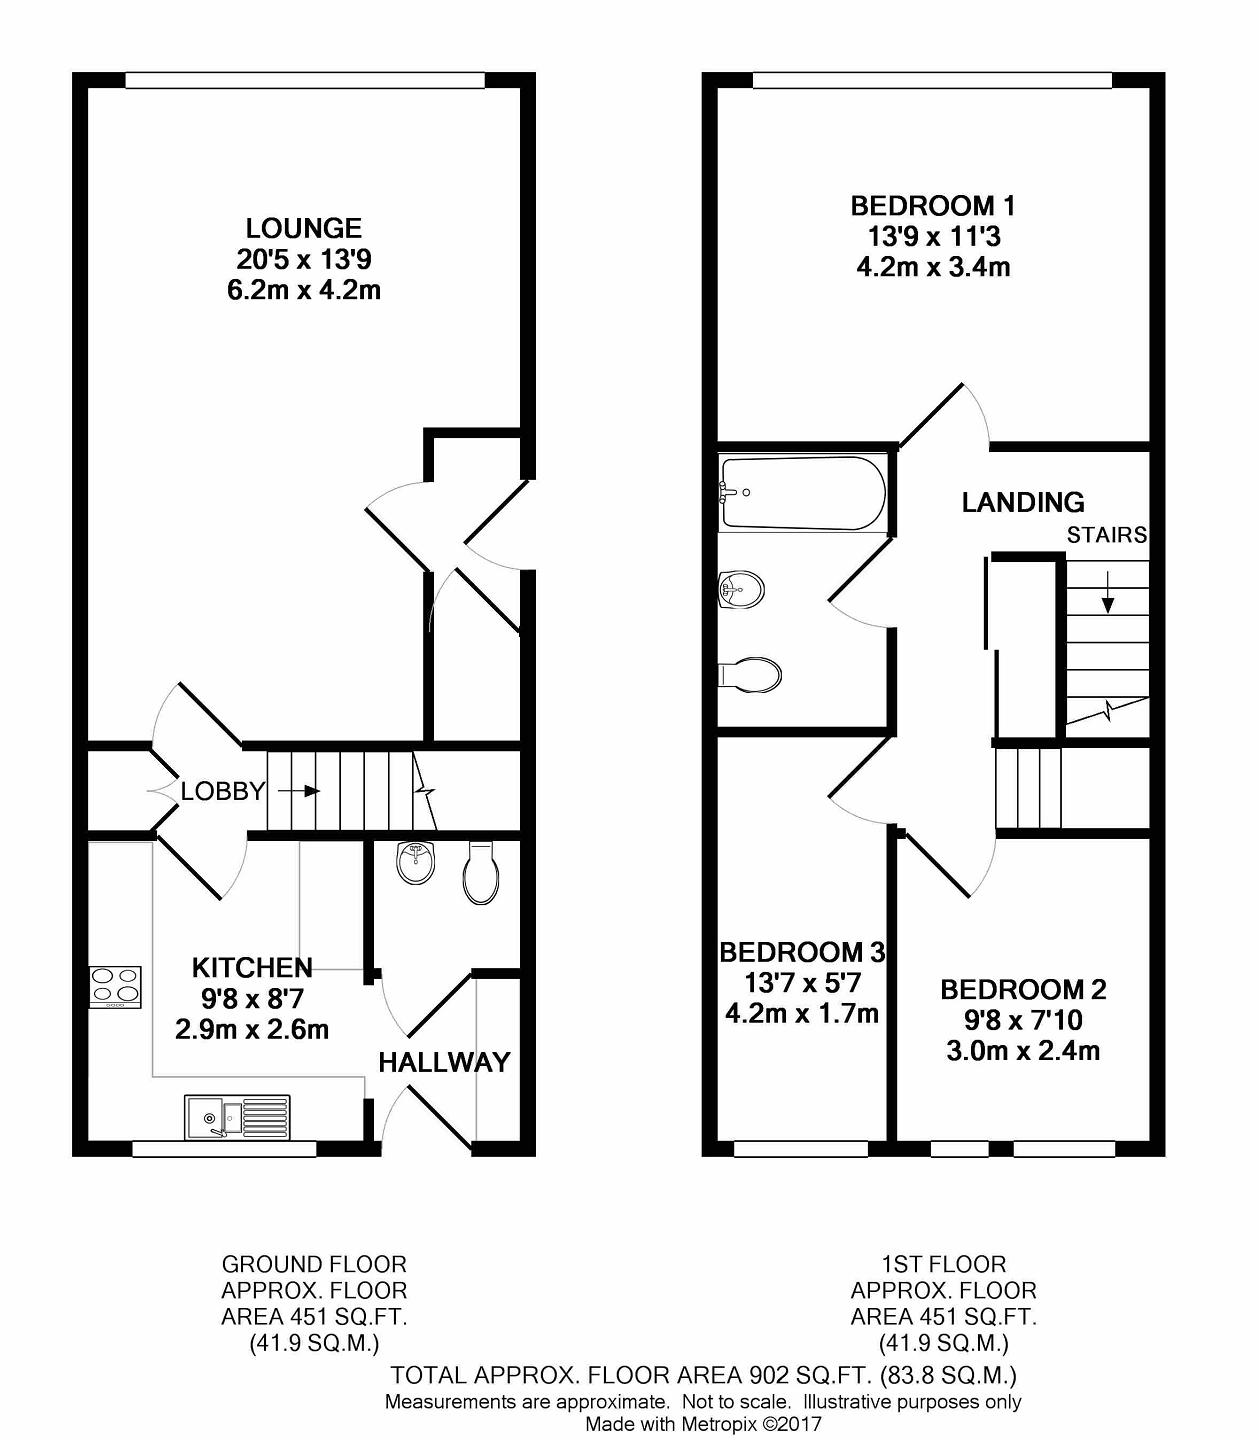 5 x 9 bathroom floor plans 28 images small bathroom for Bathroom designs 5 x 9